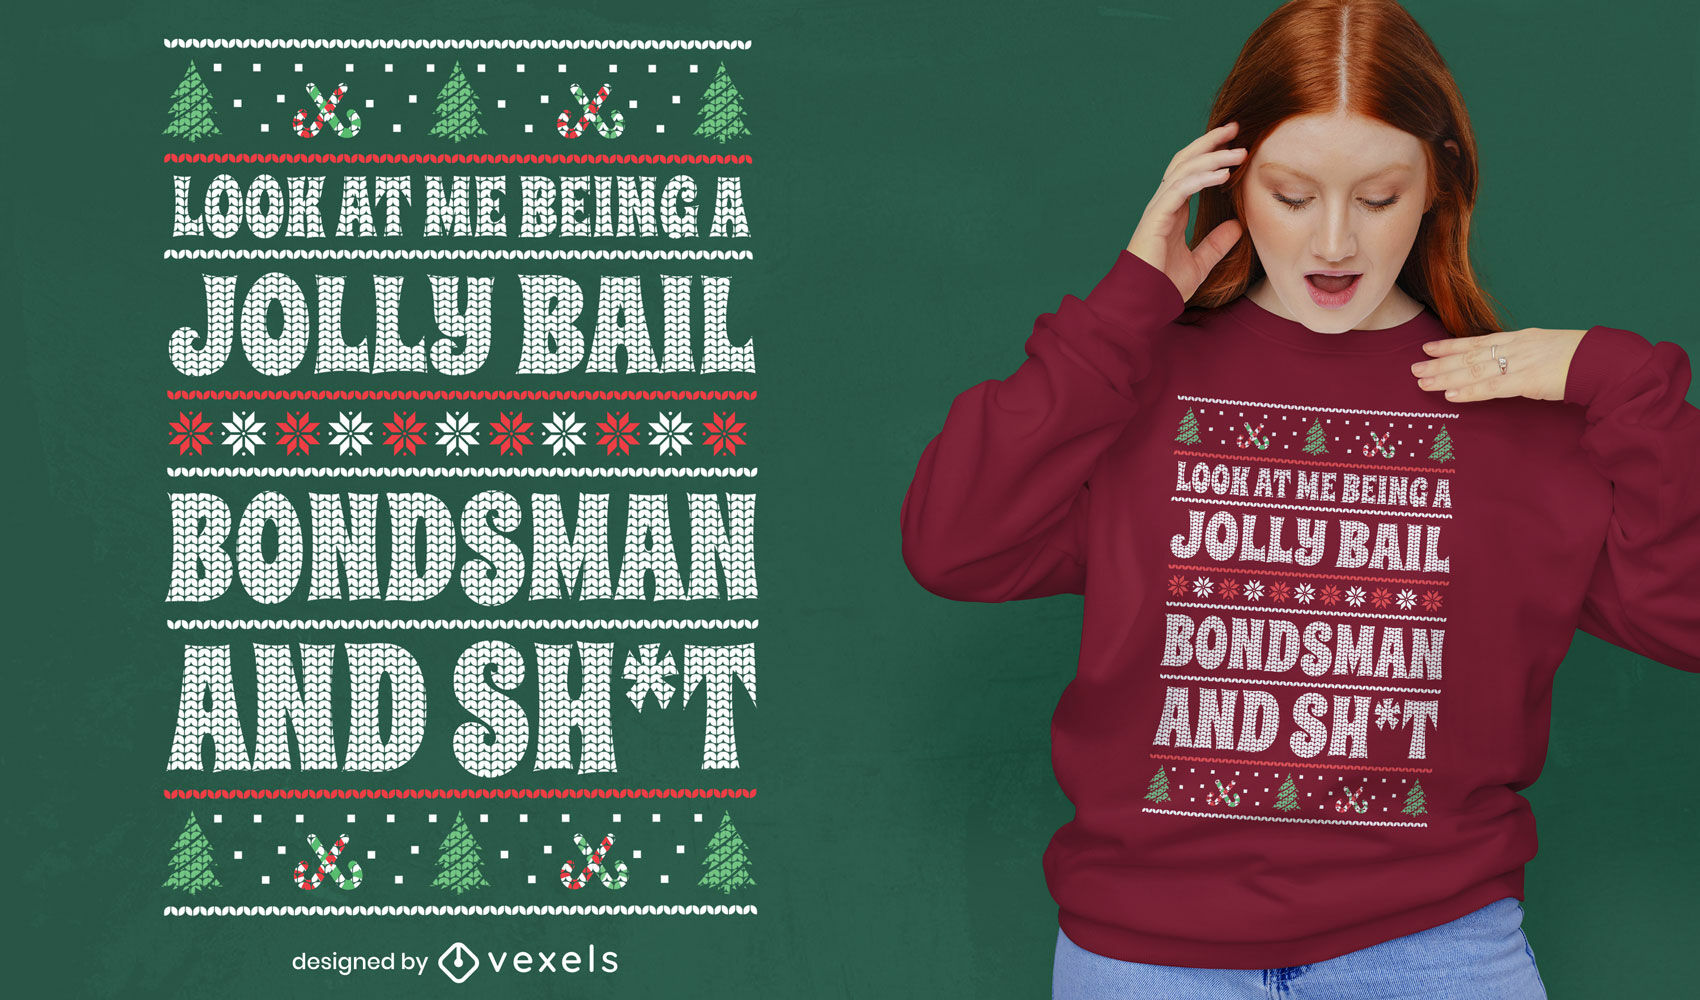 Funny Christmas ugly sweater t-shirt design